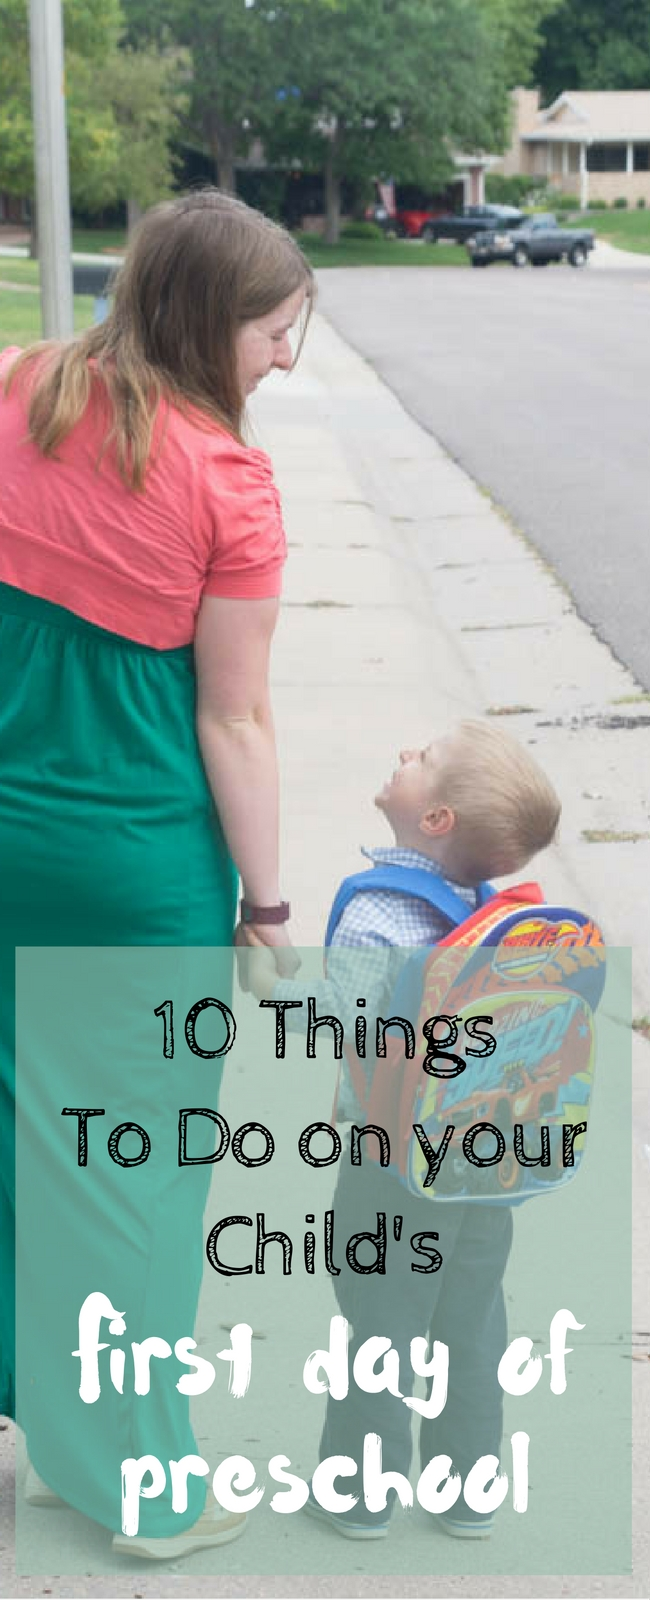 10 Things To Do on your Child's